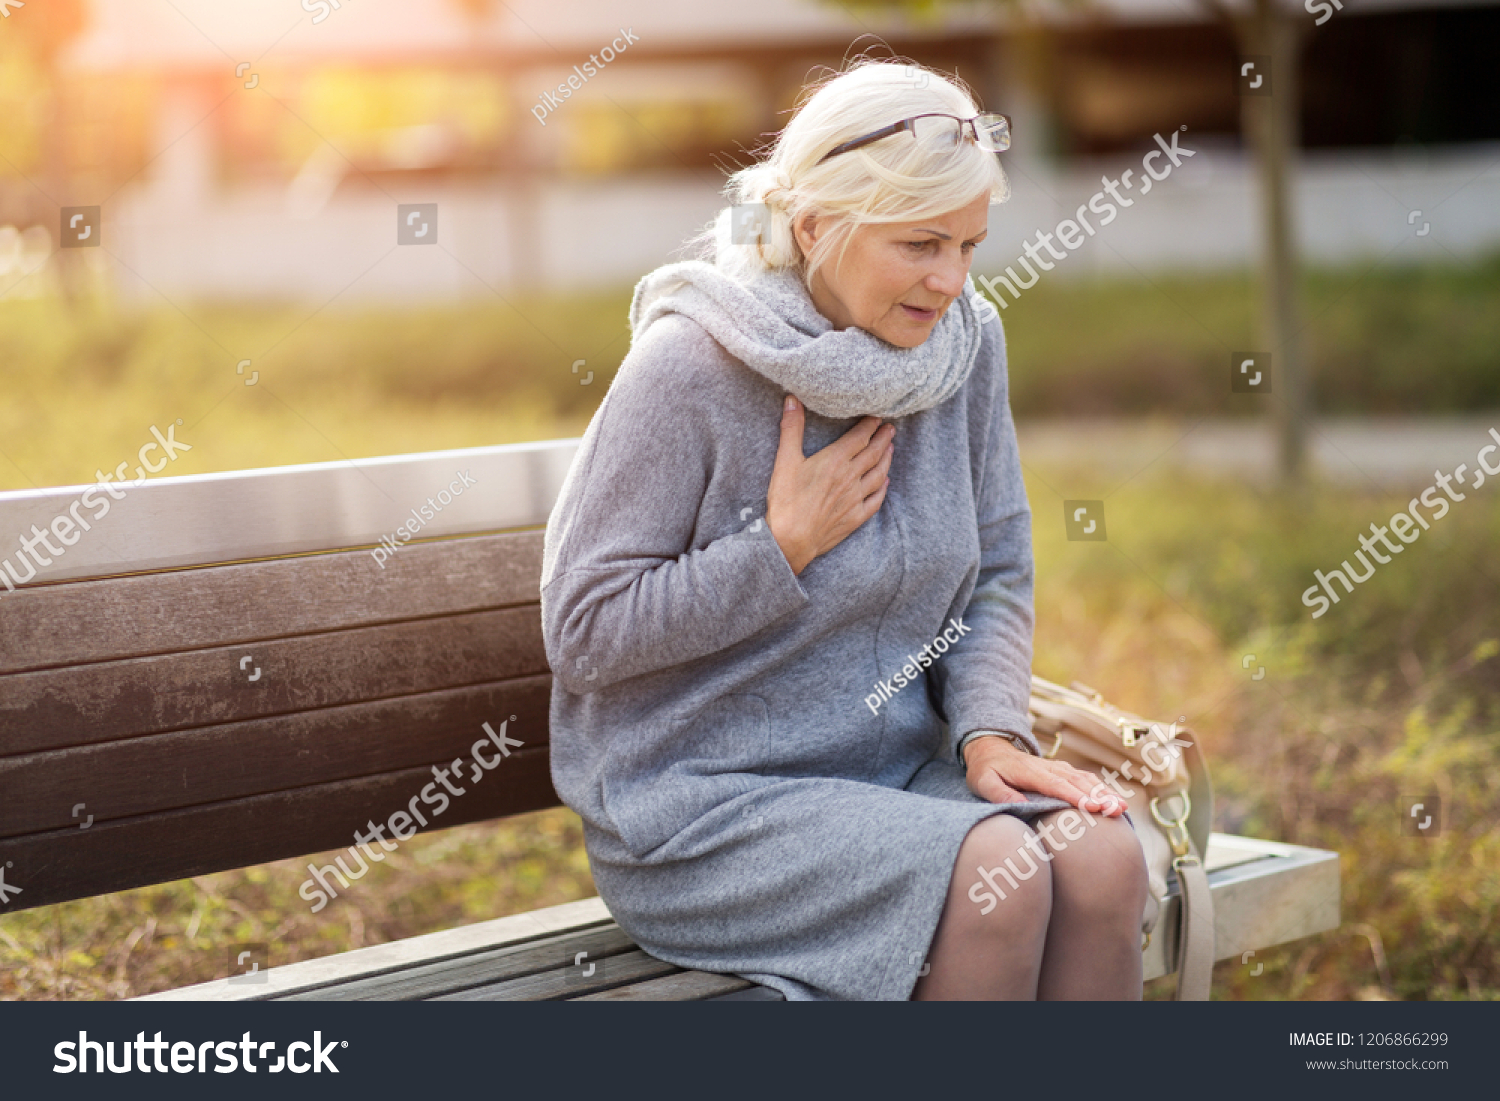 Senior Woman Suffering From Chest Pain While Sitting On Bench #1206866299